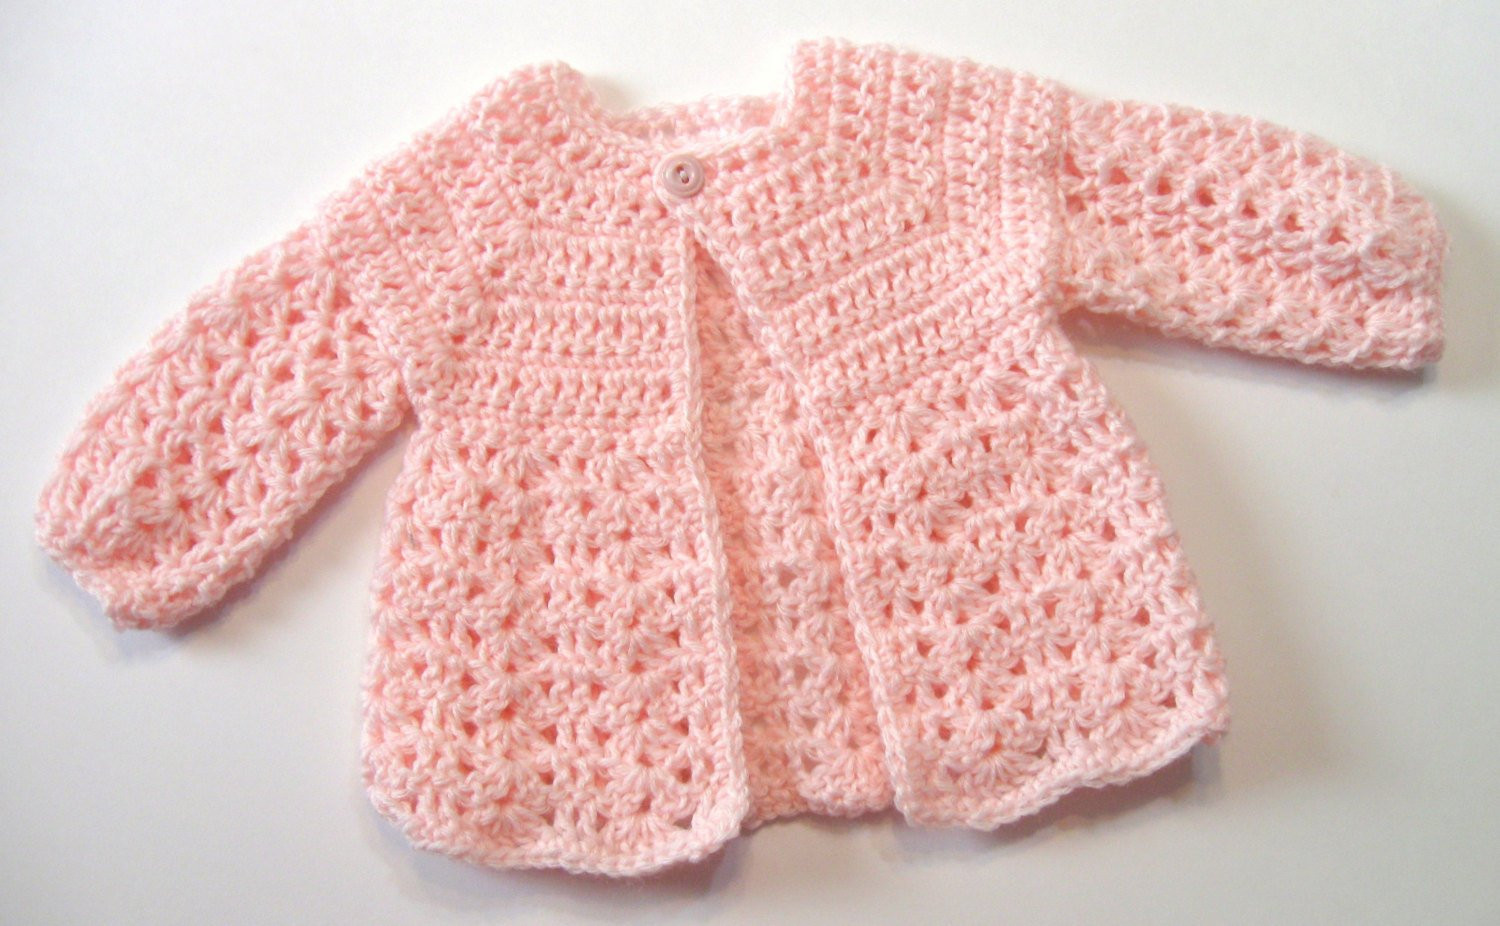 Crochet Baby Cardigan Inspirational Crochet Pattern Baby Sweater Perfect for Girls Oma S Of Amazing 49 Pics Crochet Baby Cardigan